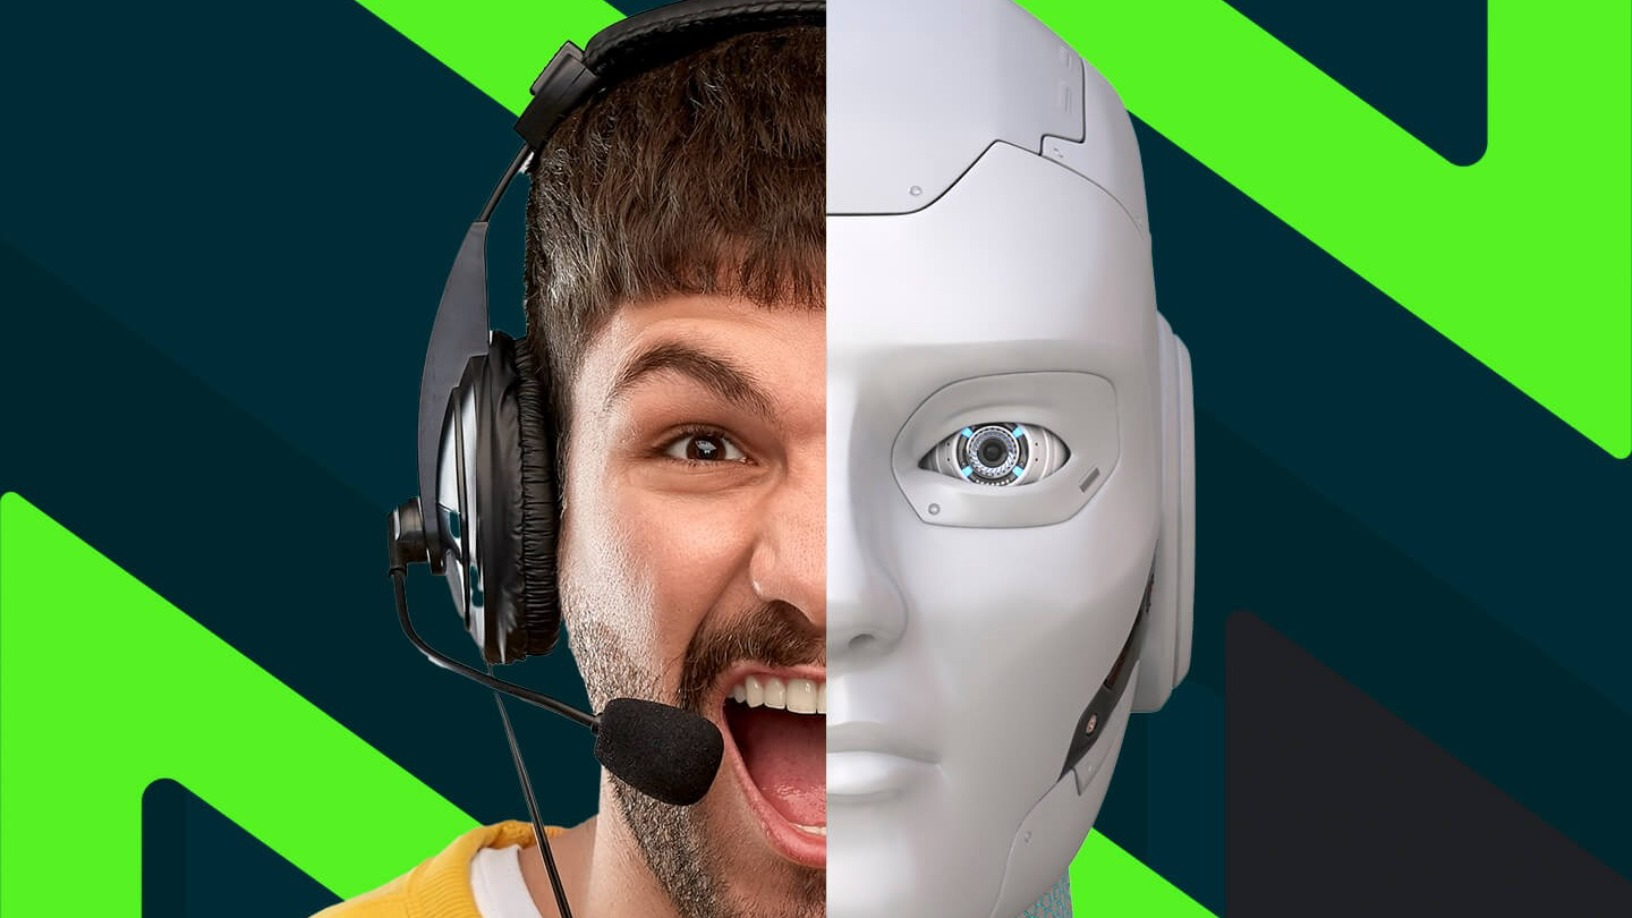 Voicemod: Voice-tweaking tech that's conquering esports and streamers